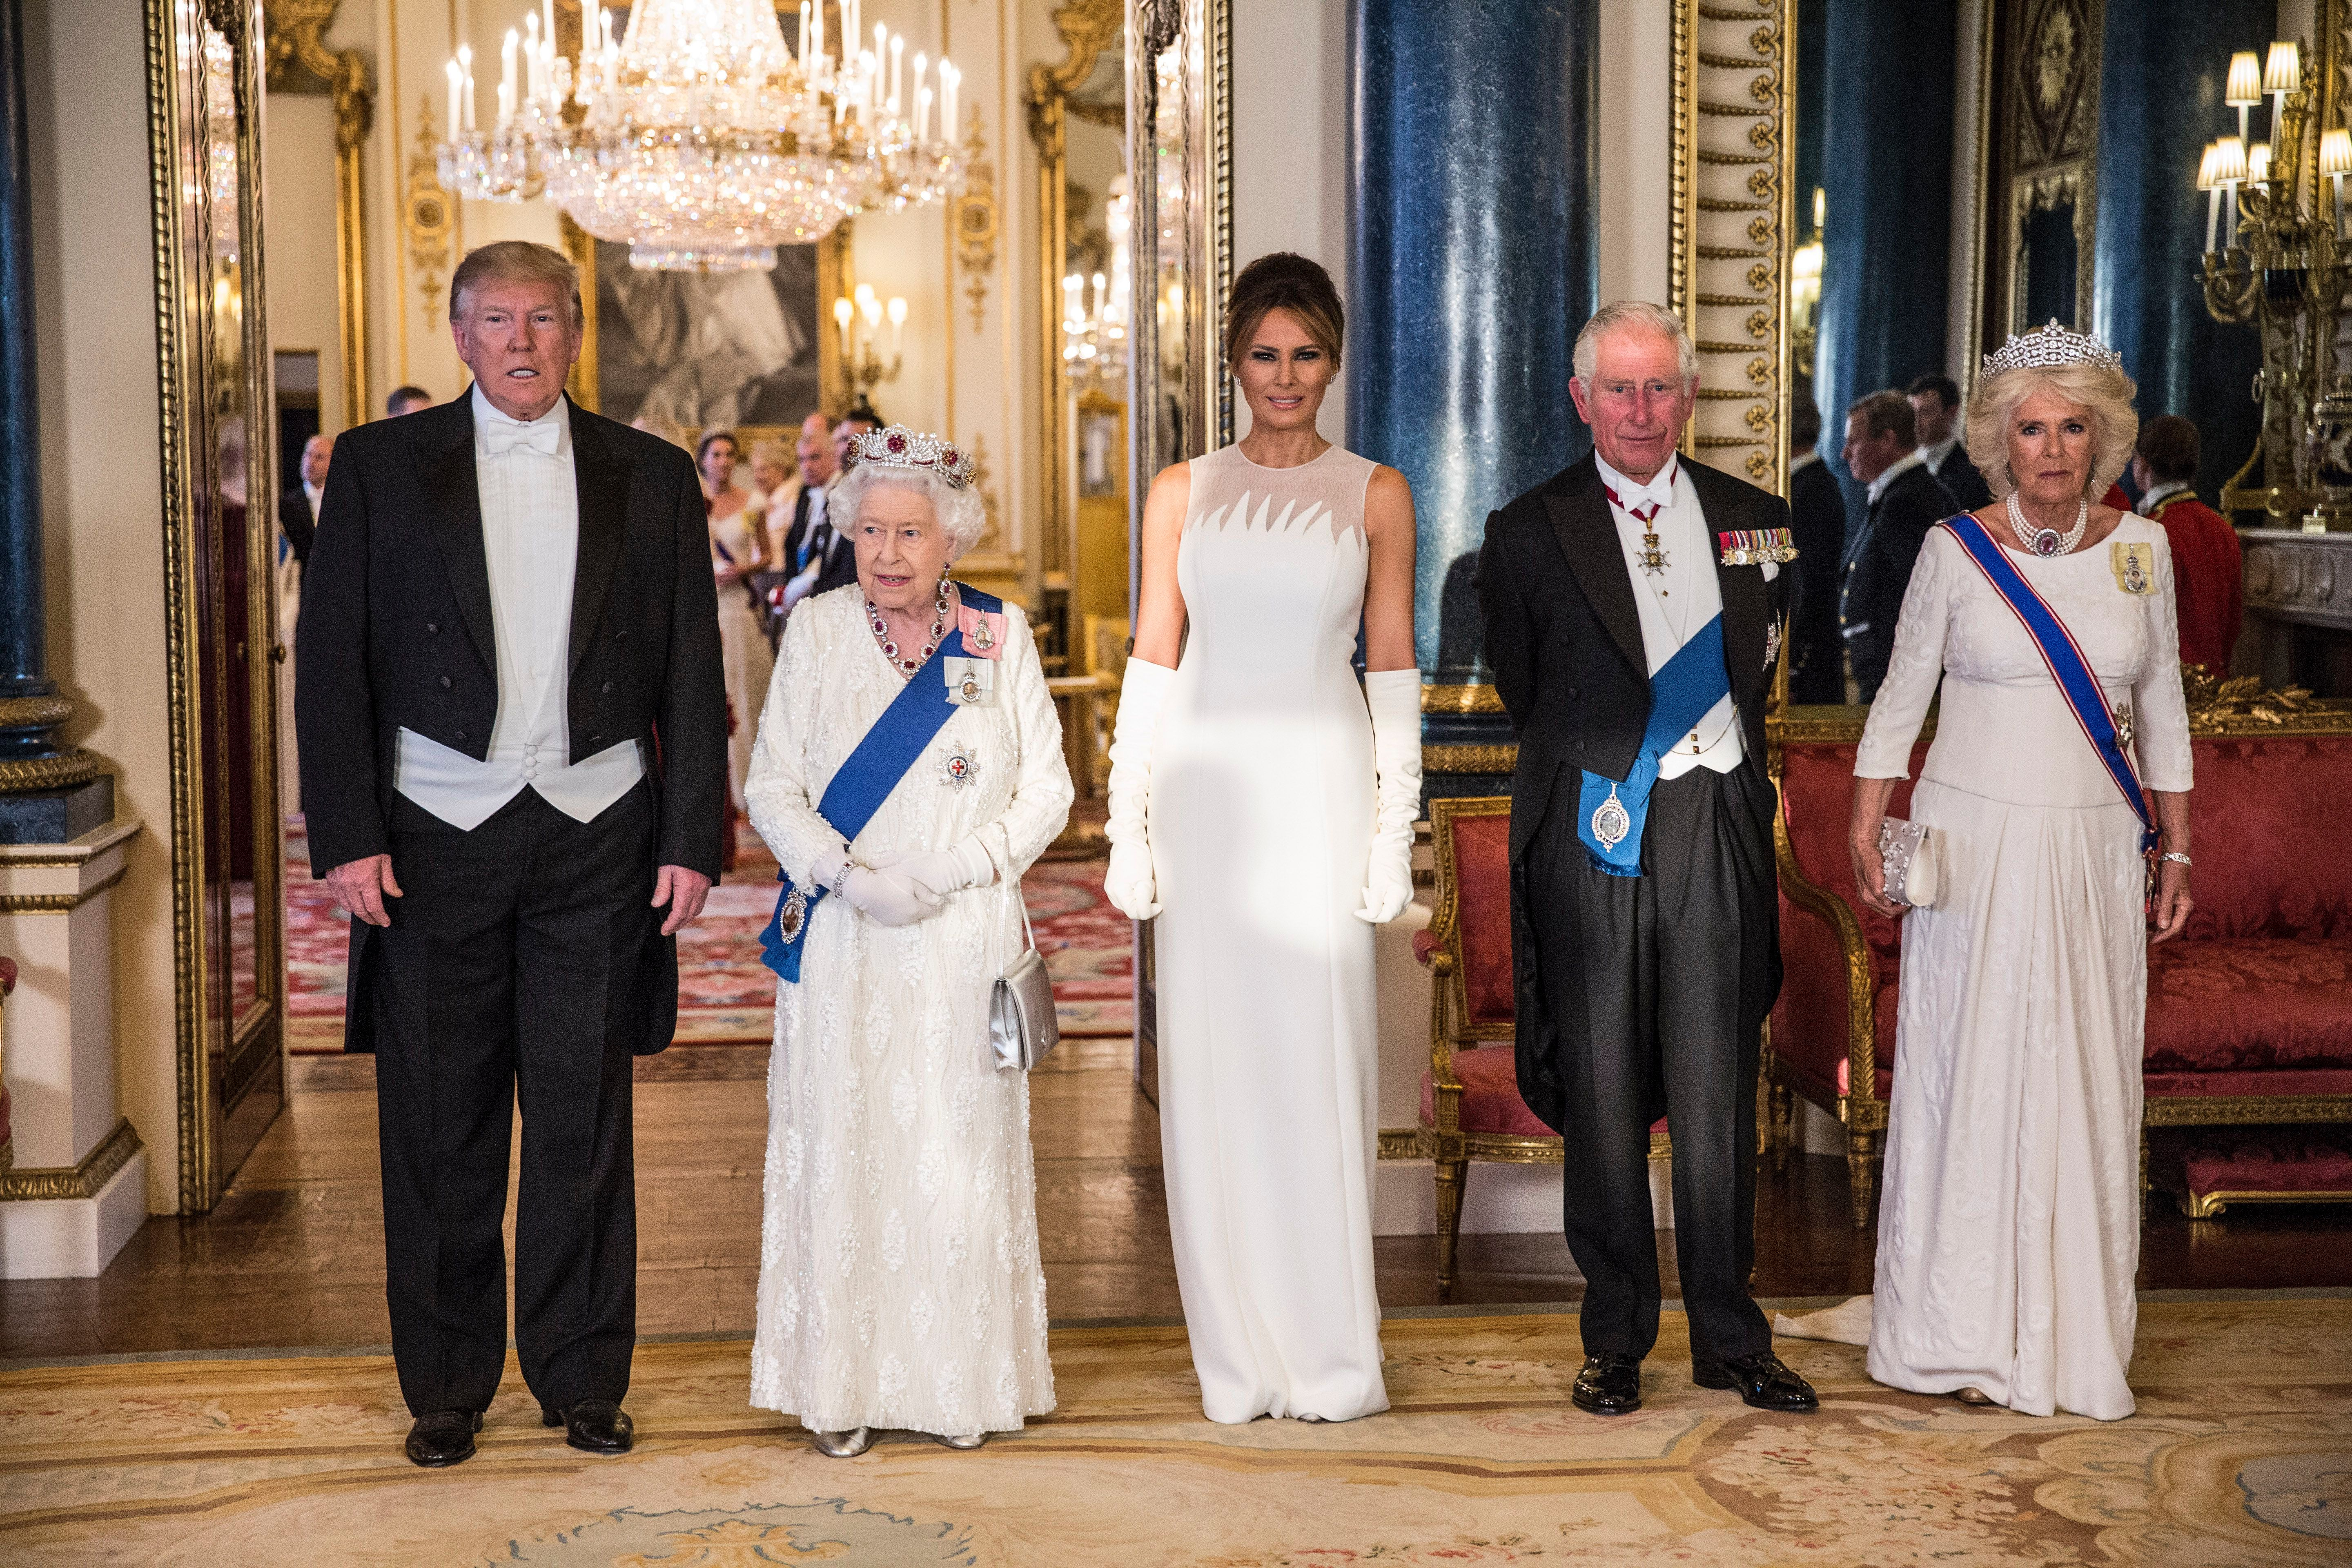 Queen Elizabeth II Elizabeth II with Prince Philip, Donald Trump, President of The United States of America and his wife Melania Trump at State Banquet, Buckingham PalaceUS President Donald Trump state visit to London, UK - 03 Jun 2019